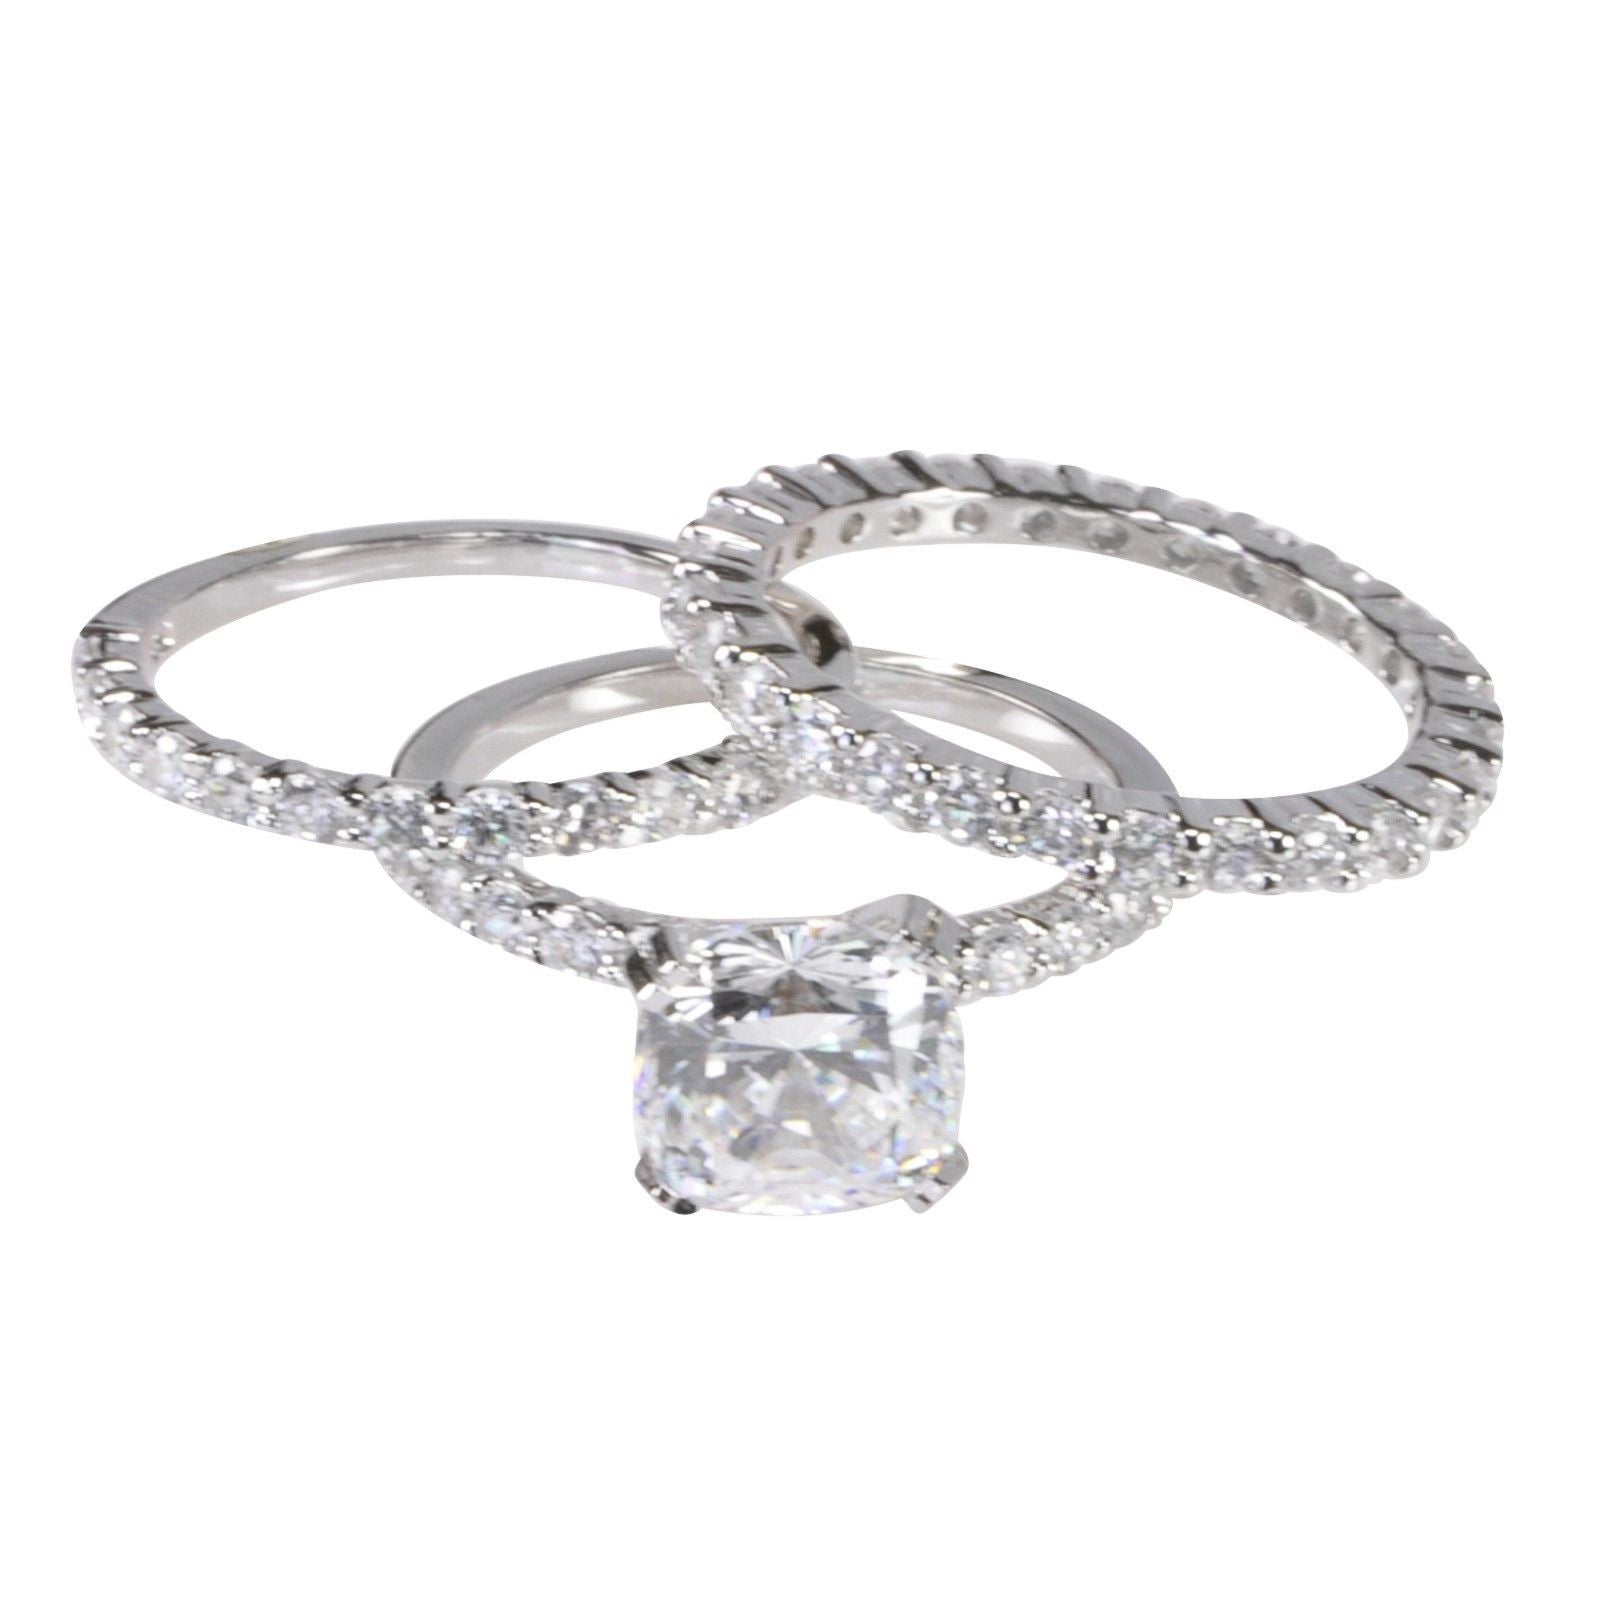 3 Ring Bridal Set 2ct Ring & Two 2mm Wedding Band Sterling Silver